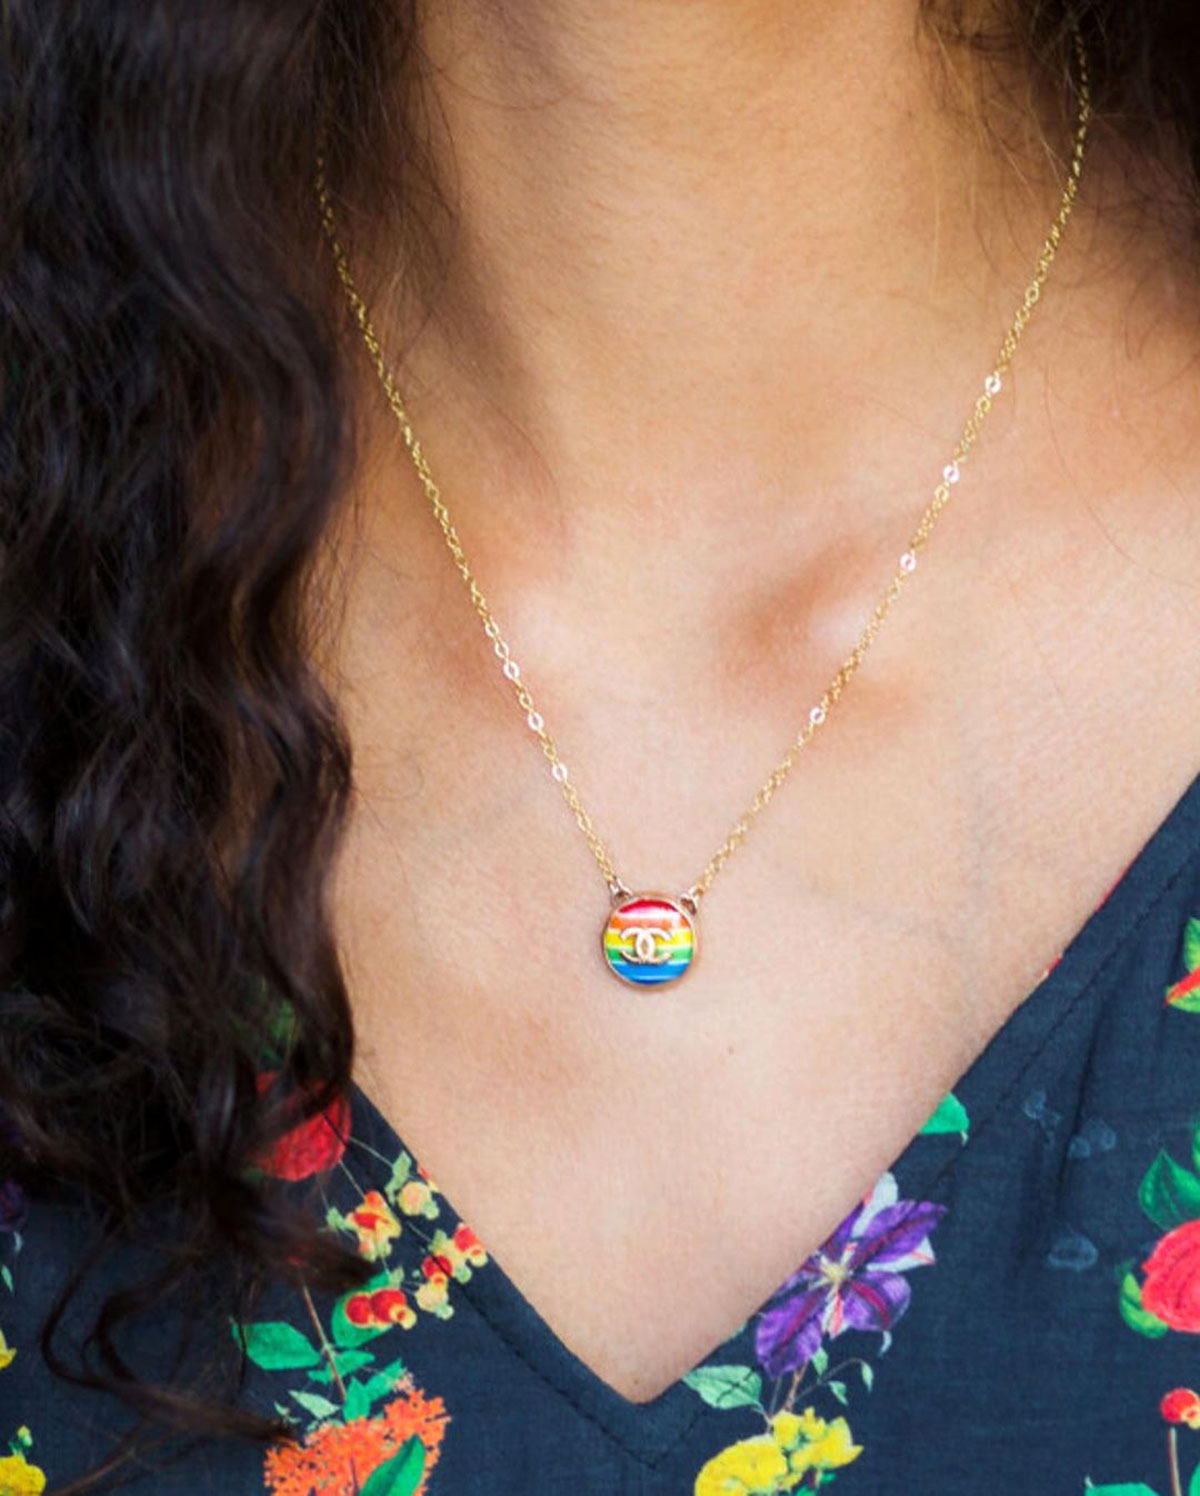 How Braunwyn Windham-Burke's New Jewelry Line Supports LGBTQ+ Youth